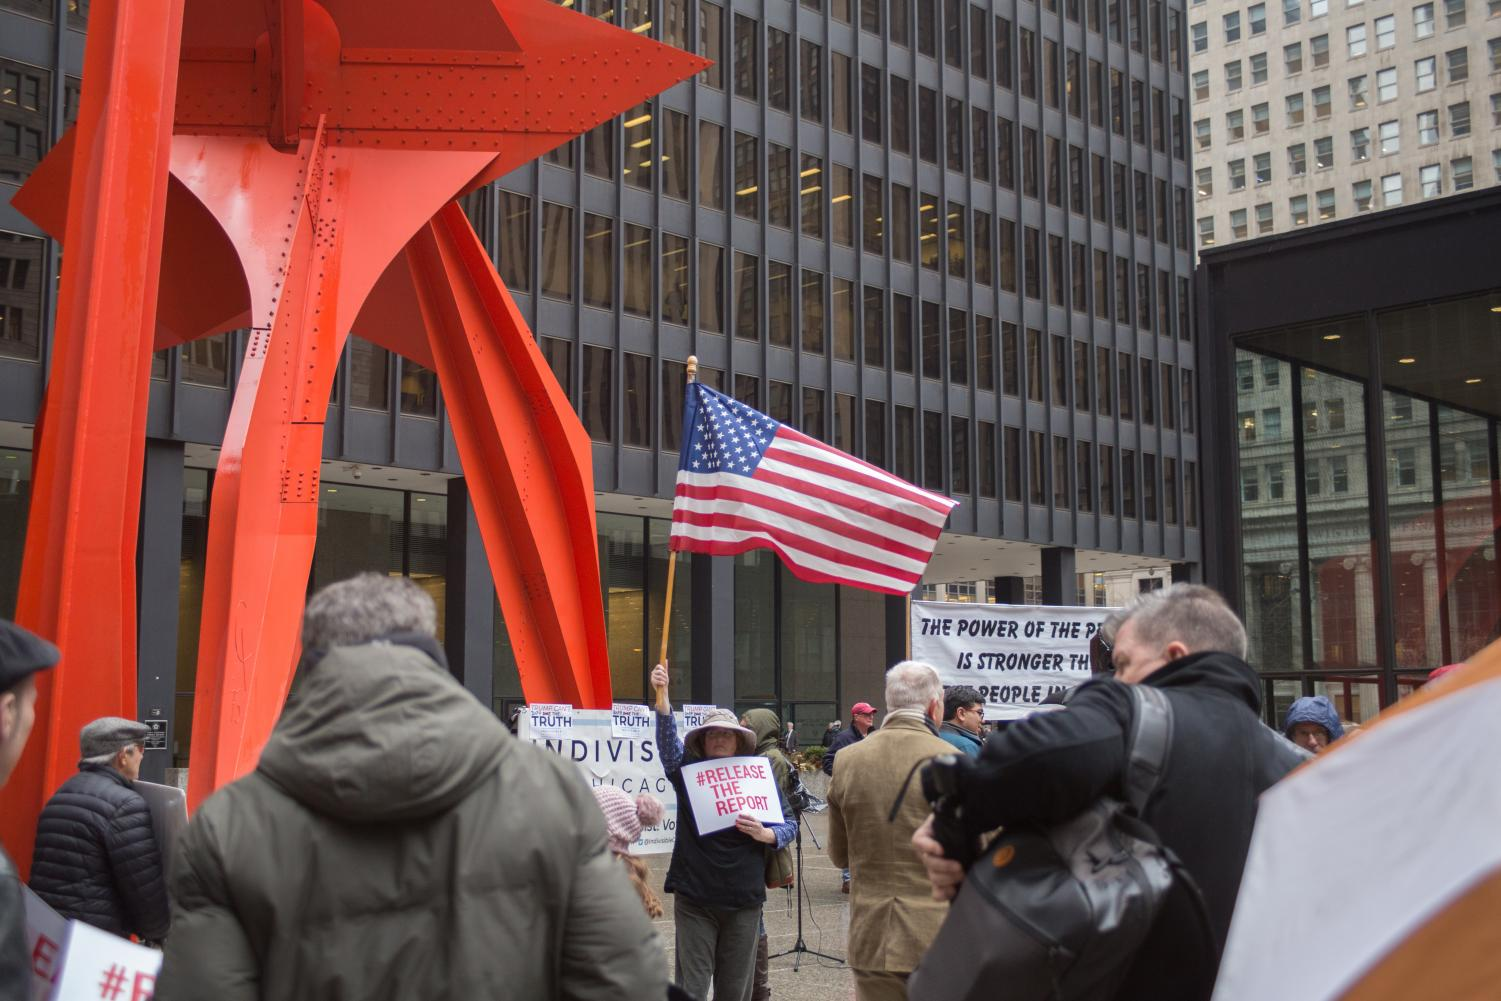 Margaret+Hagerman+holds+the+United+States+flag+before+the+%23MakeItPublic+rally+began.